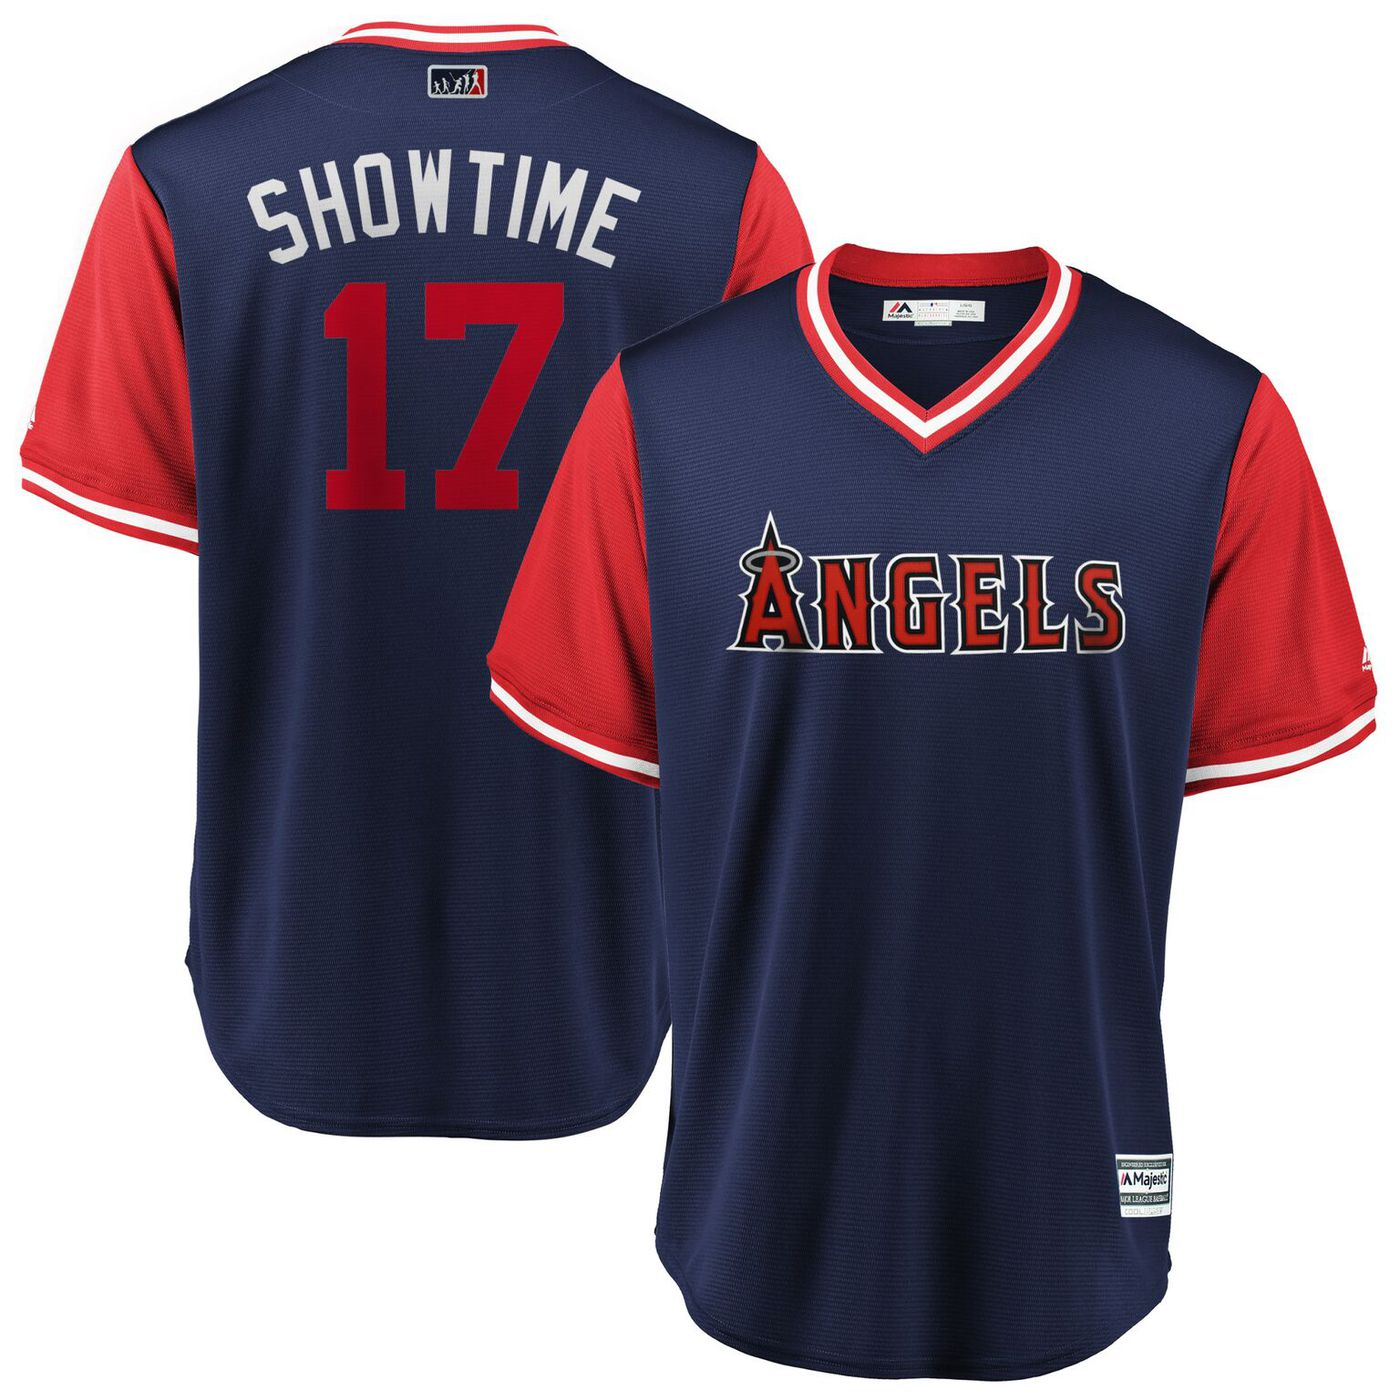 fef67eb6ef1 The 2018 MLB Players Weekend uniforms and merch is live - SBNation.com